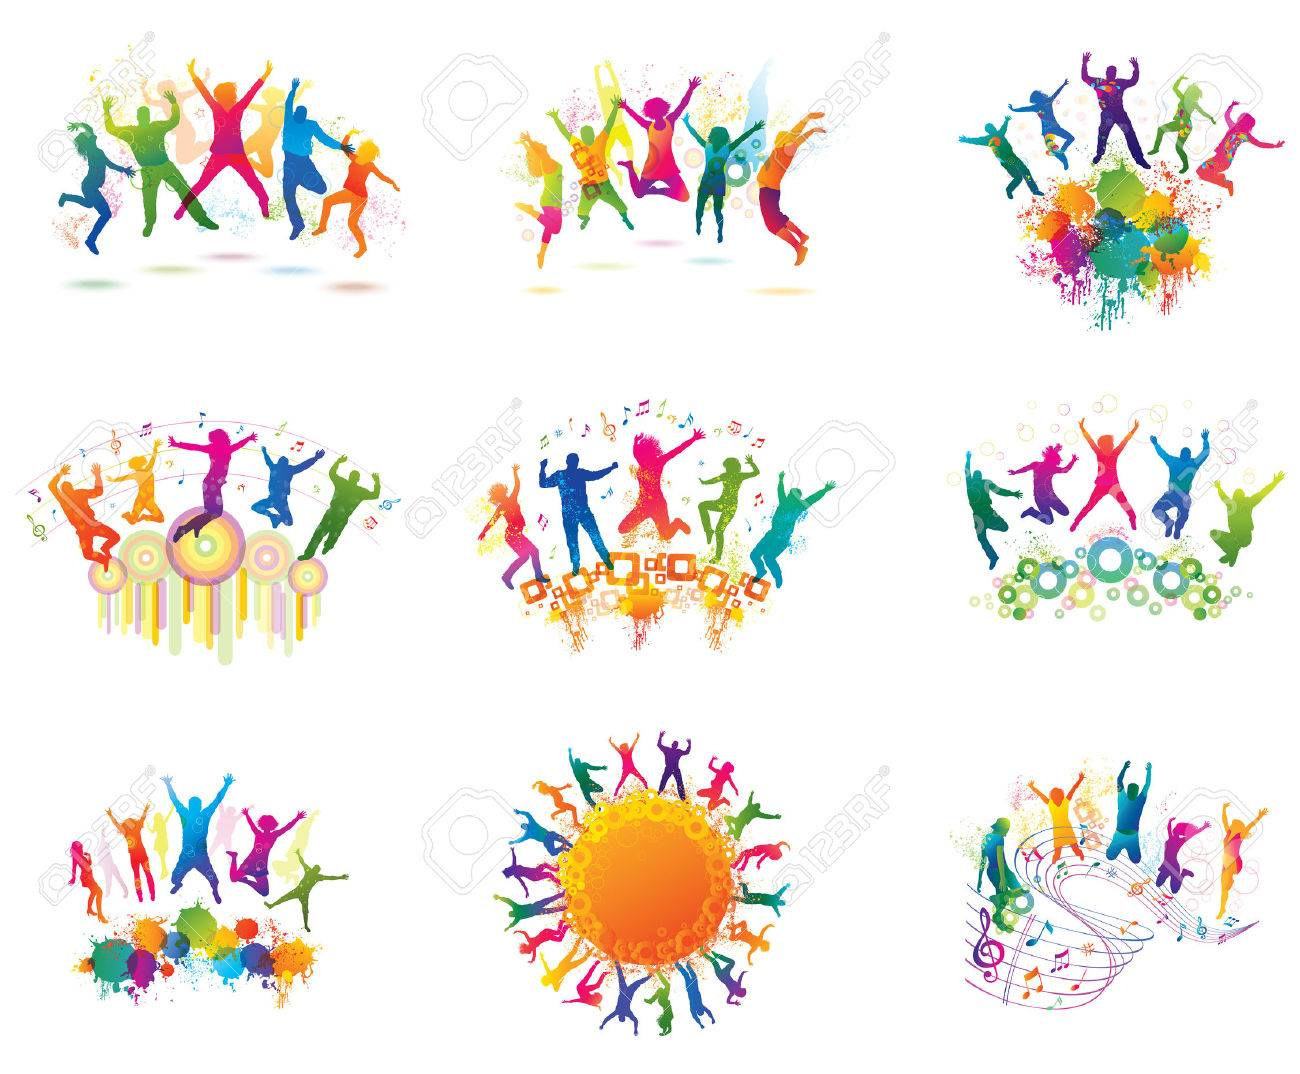 Young people on the party. The dancing teenagers. Stock Vector - 44080541